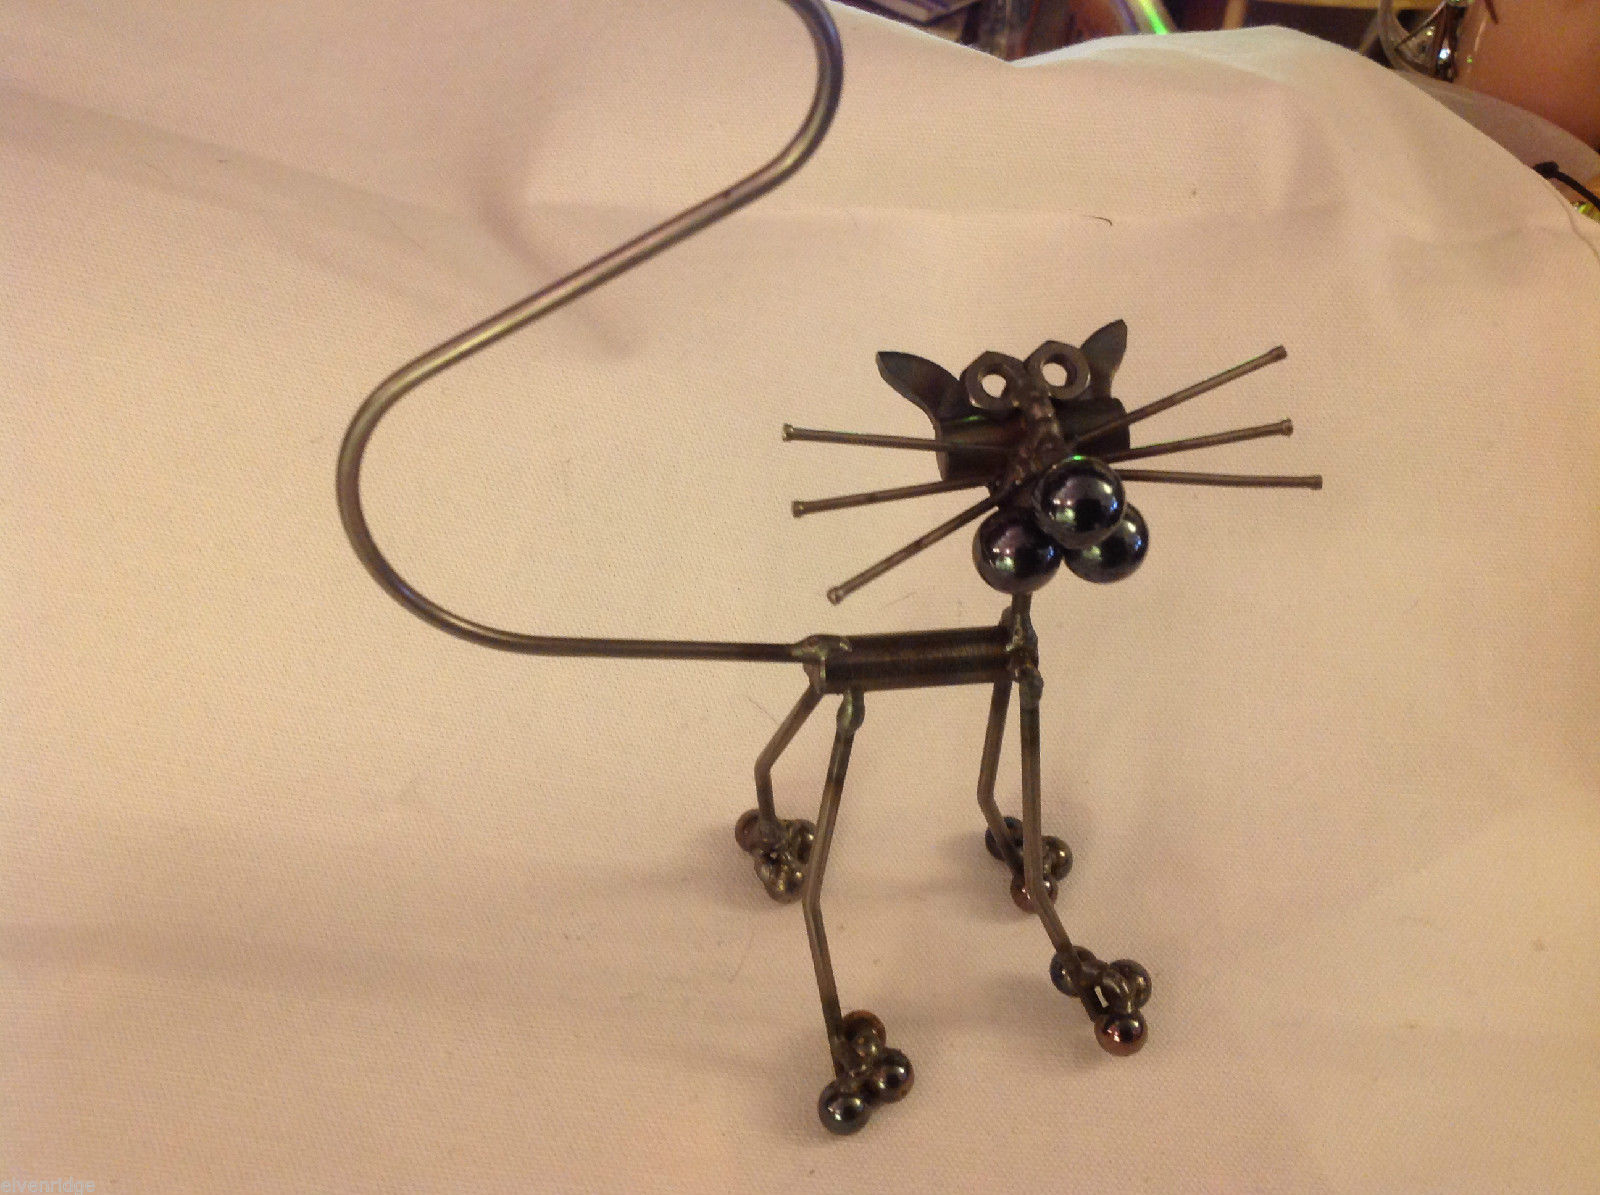 metal sculpture Screw Cat with tail hand made by elf works lane staff artist